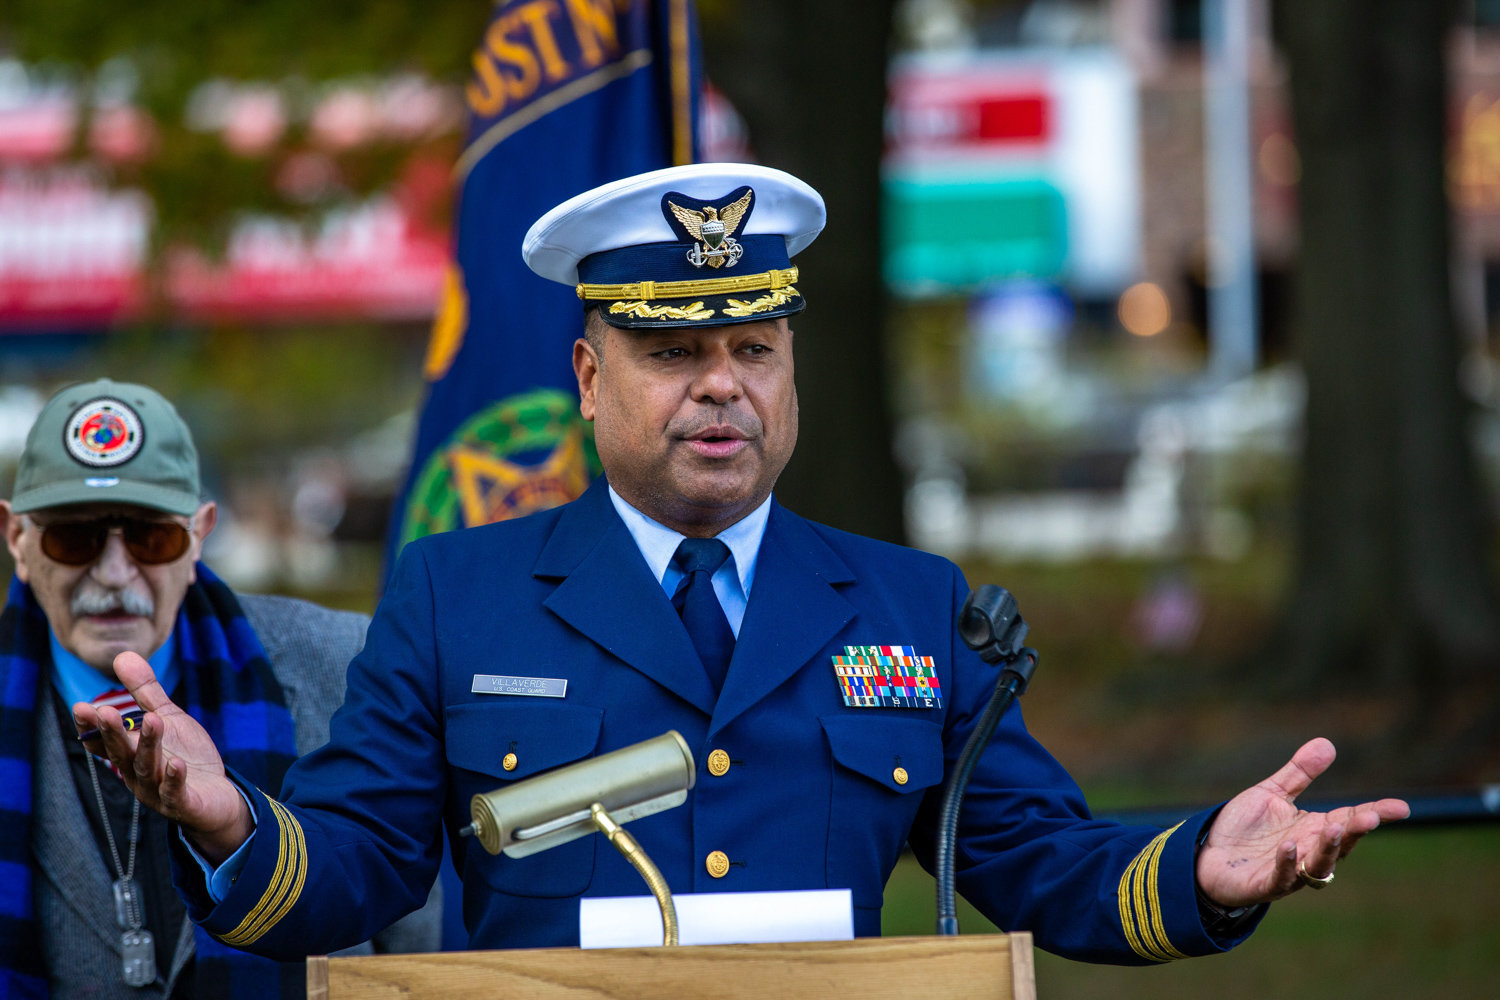 U.S. Coast Guard Reserve Cmdr. Sergio Villaverde speaks about the importance of community for veterans during a ceremony in Van Cortlandt Park's Memorial Grove on Nov. 3.